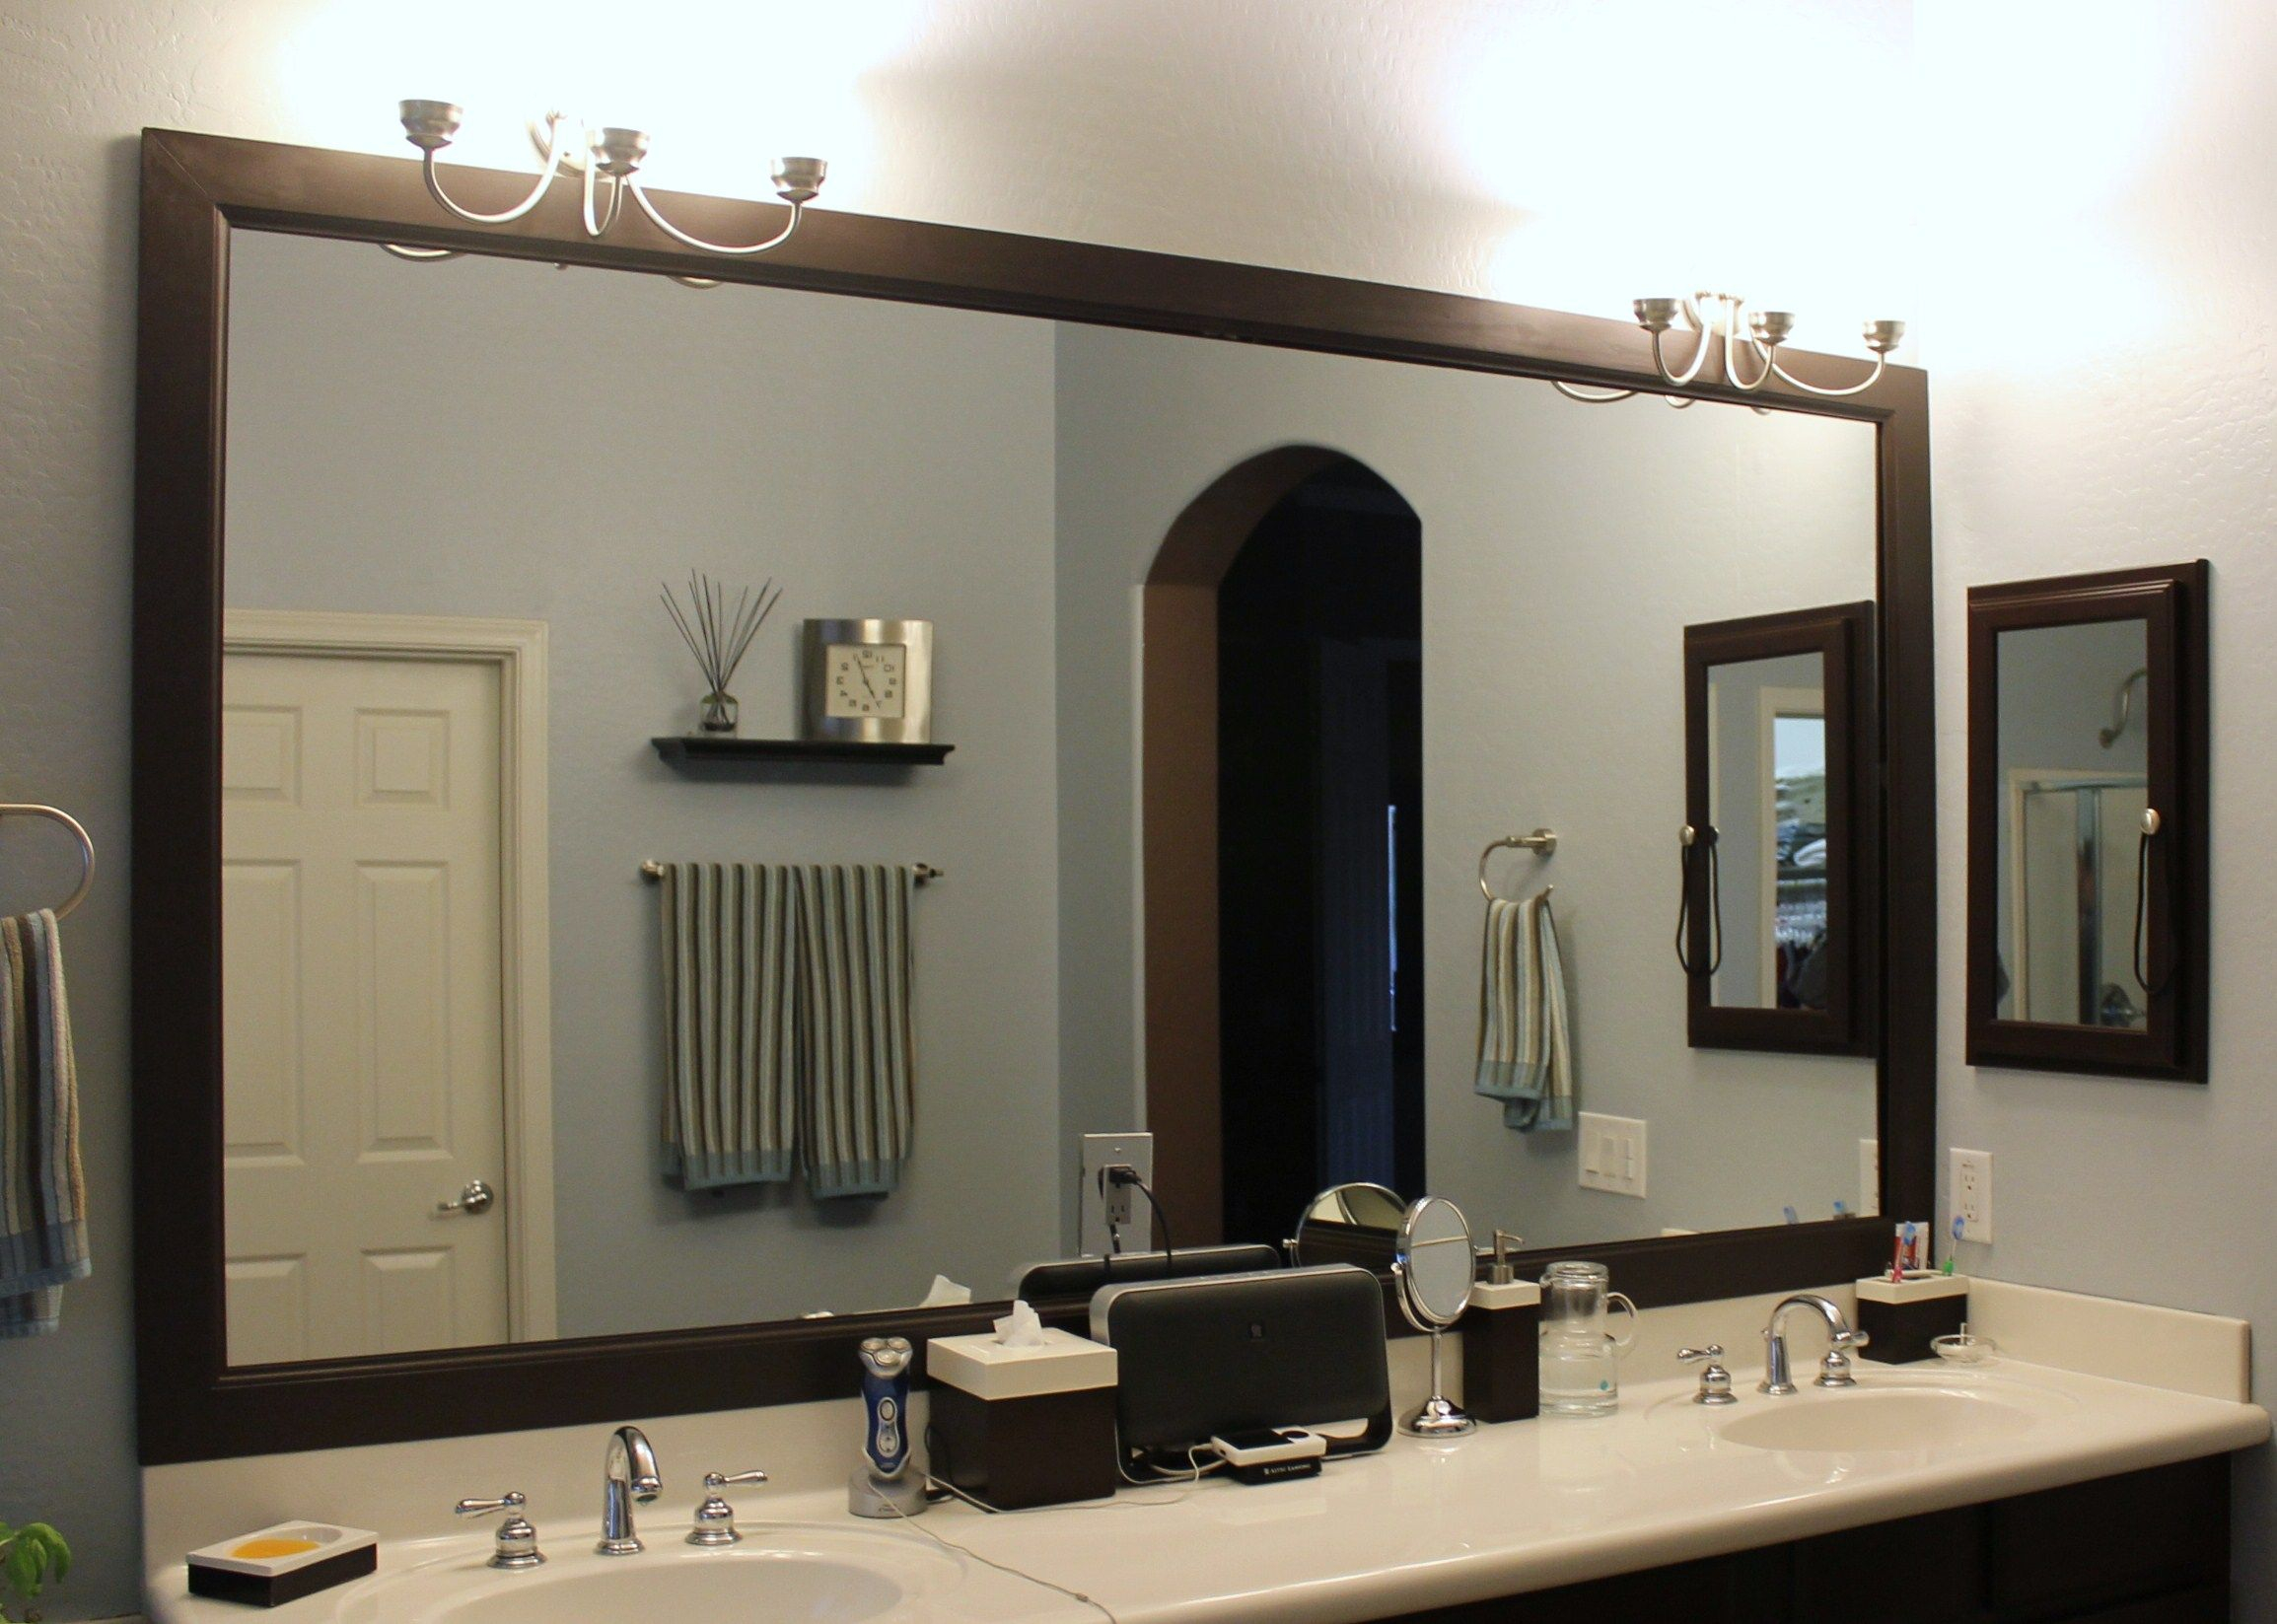 Diy Bathroom Mirror Frame Wood Baseboard Molding Mitered within proportions 2309 X 1647